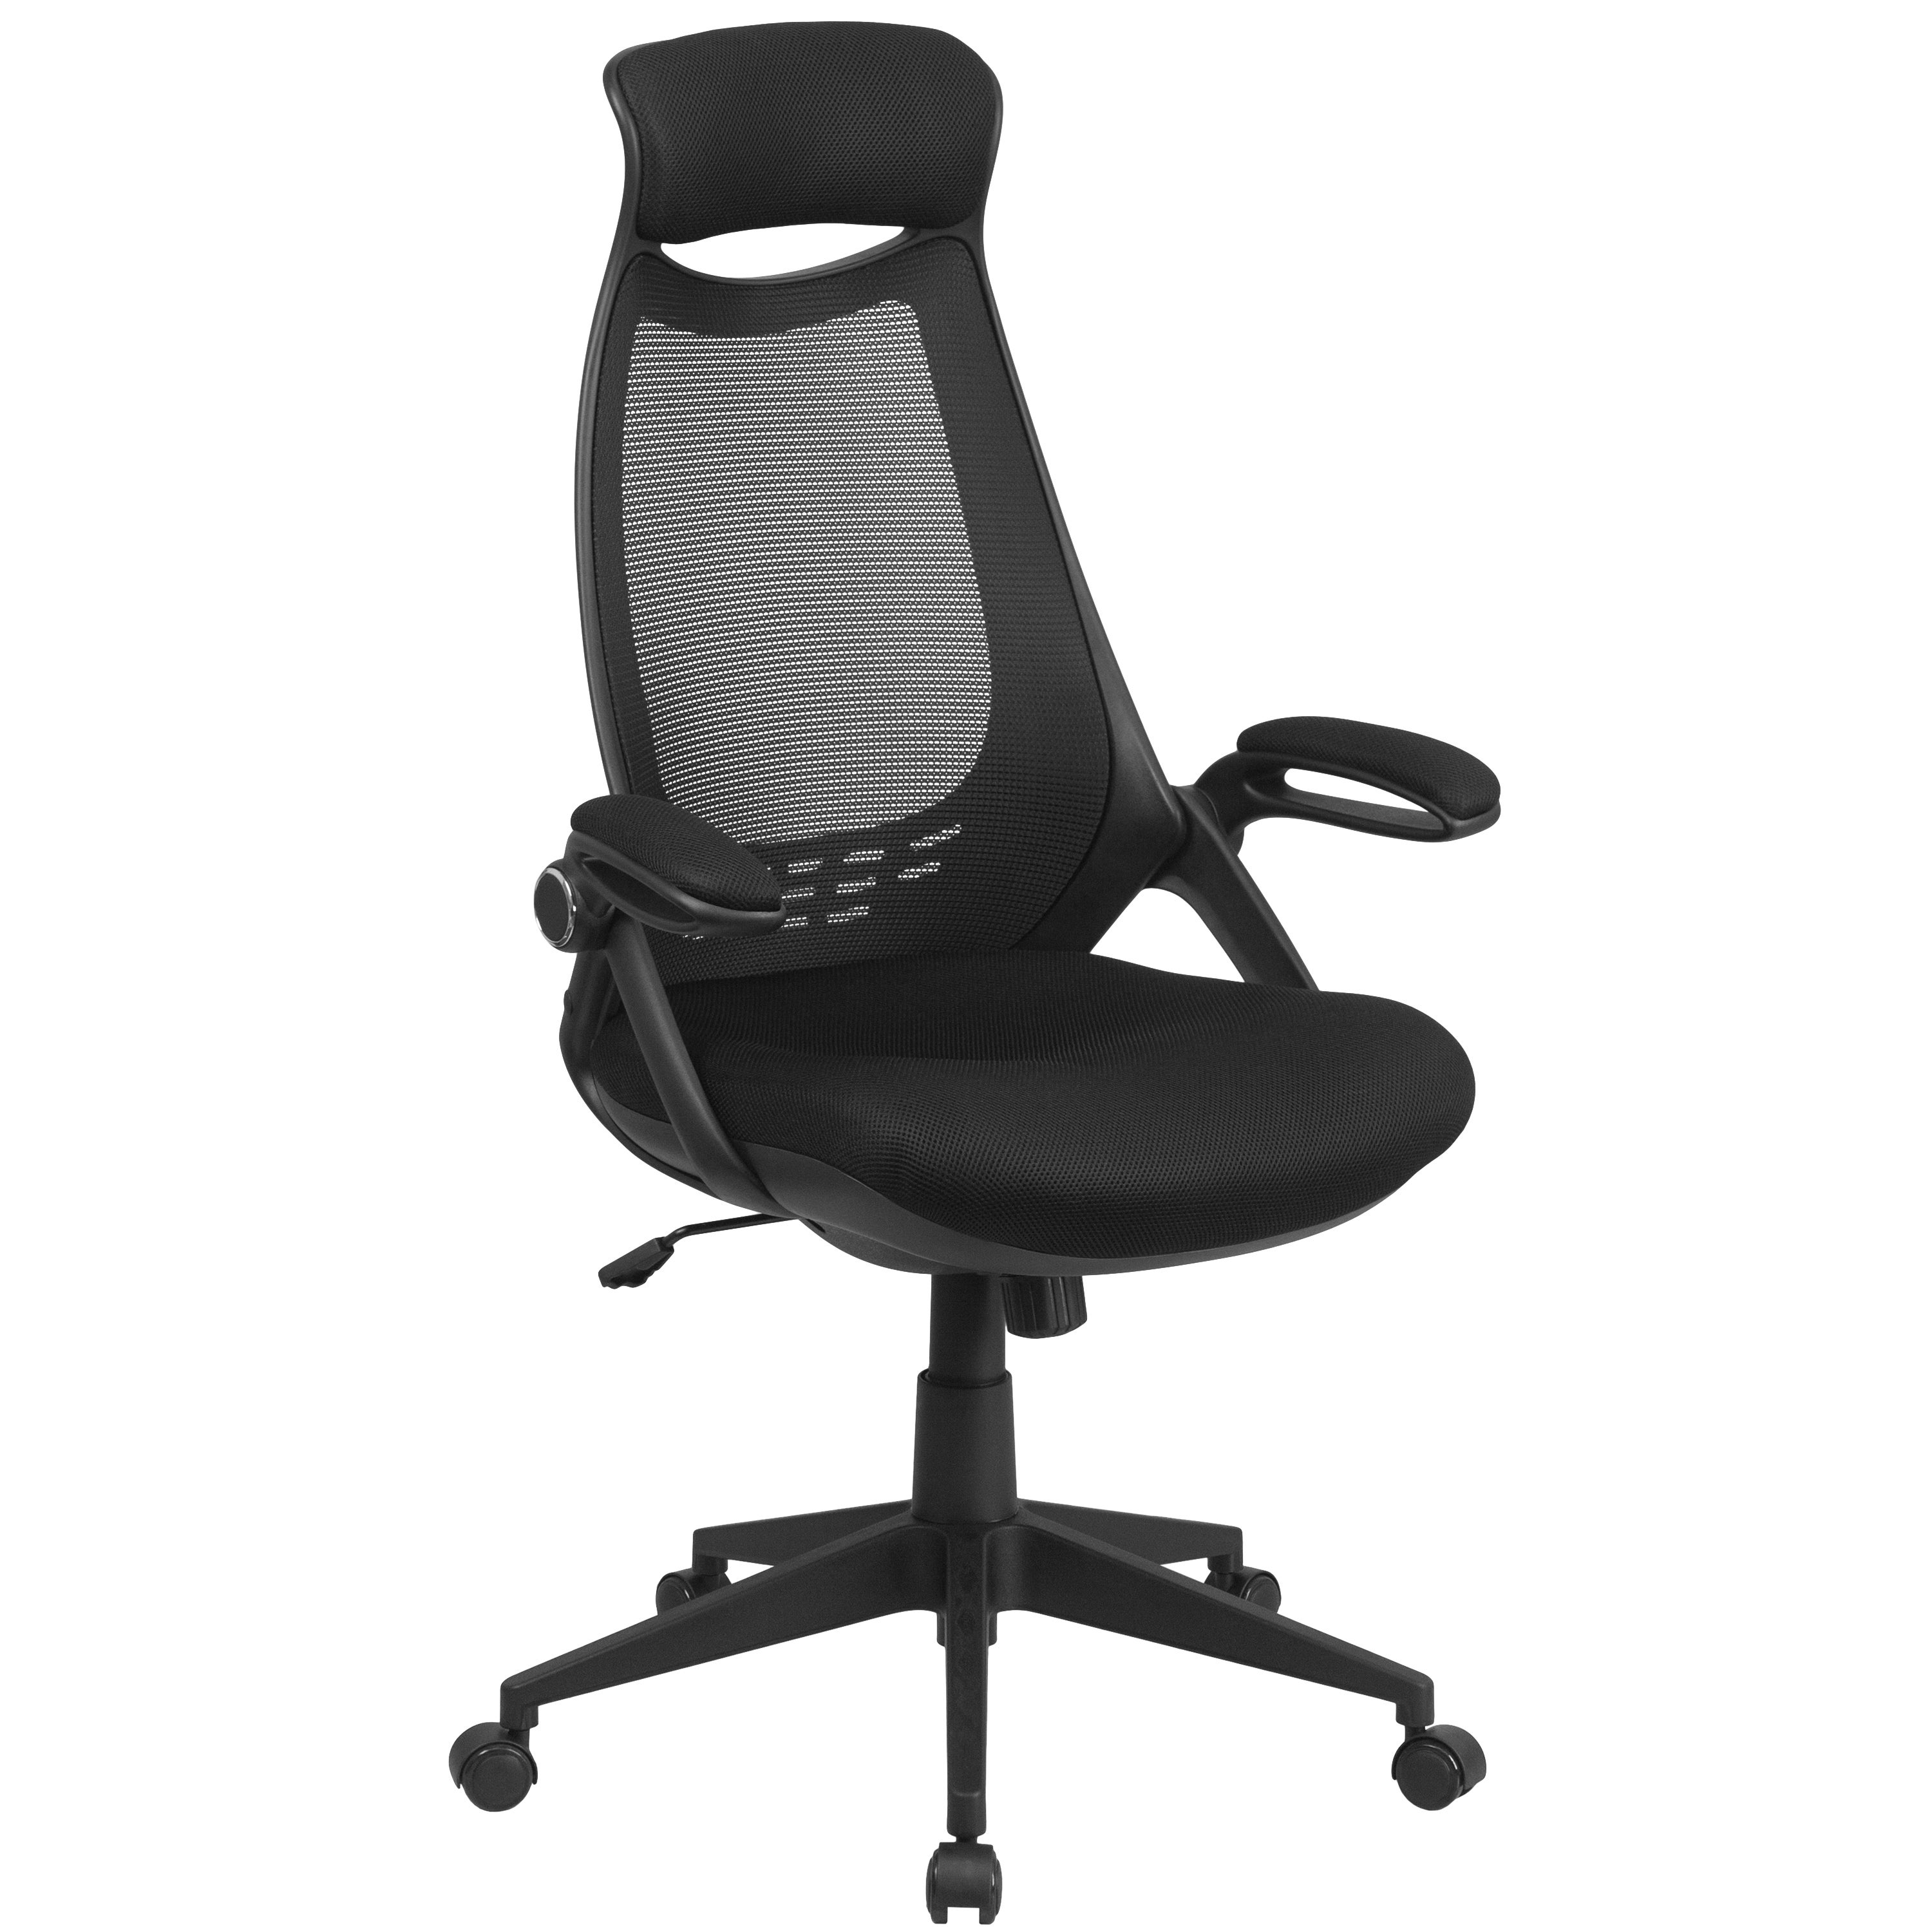 Fionan Black Mesh Executive Swivel Adjustable Office Chair With Flip Up Arms